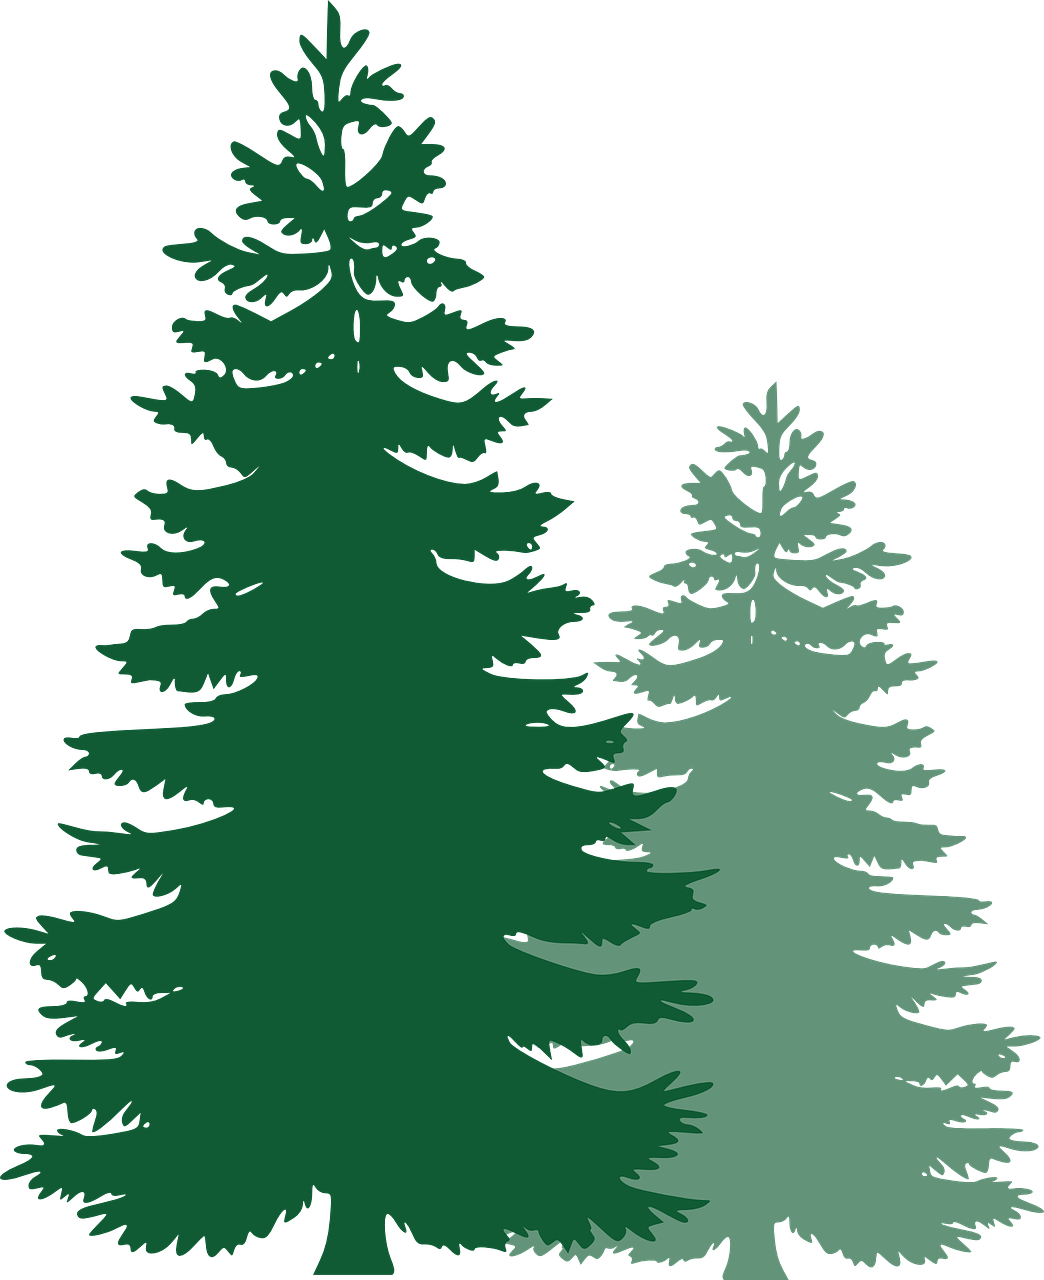 Pine tree forest clipart image library stock Forest, Pine Trees Spruce Trees Evergreen Trees Tr #forest, #pine ... image library stock